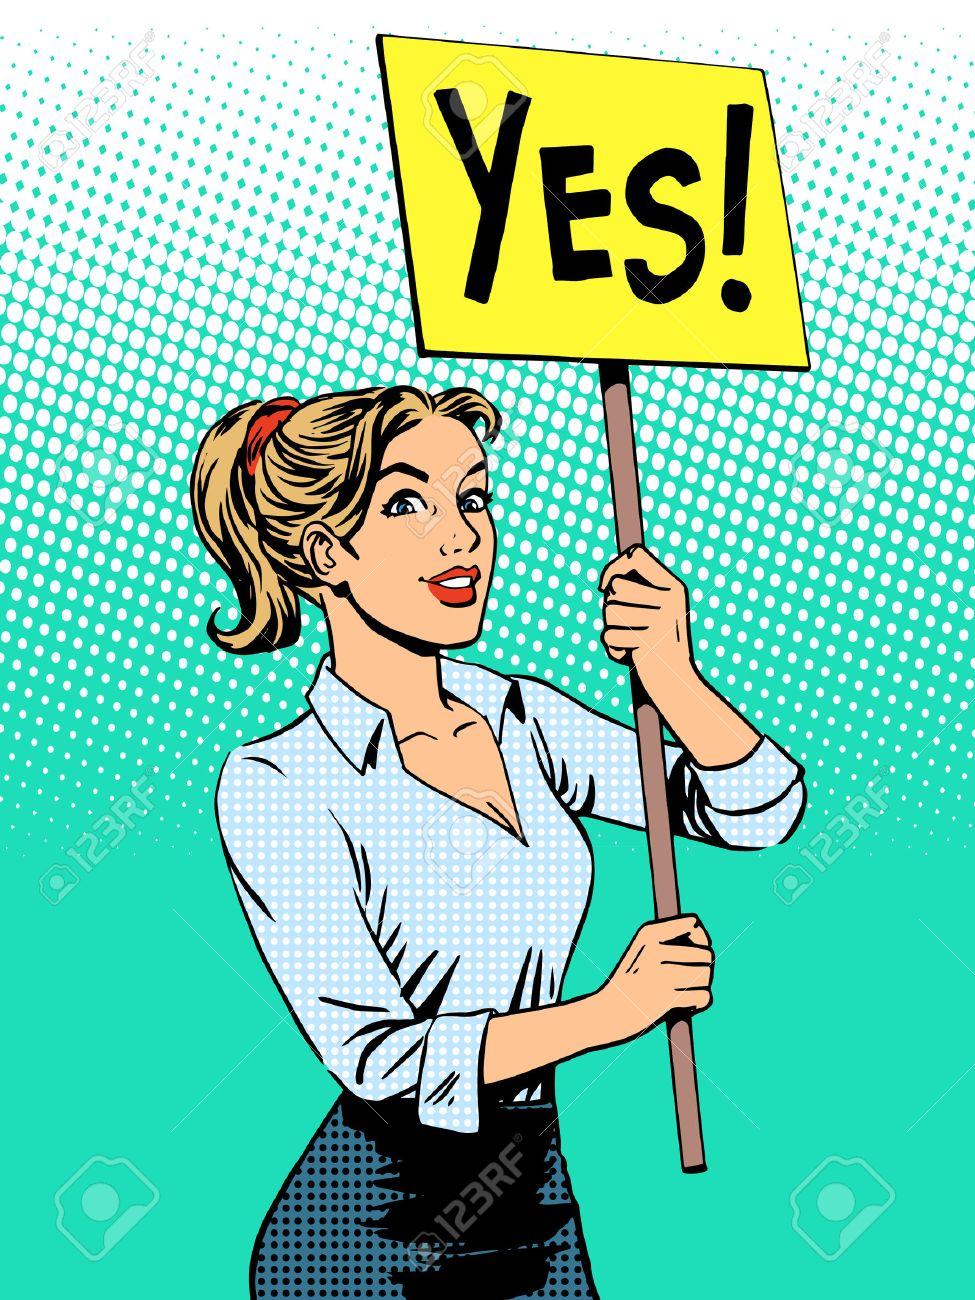 businesswoman policy protest with a poster yes pop art retro style - 46967924